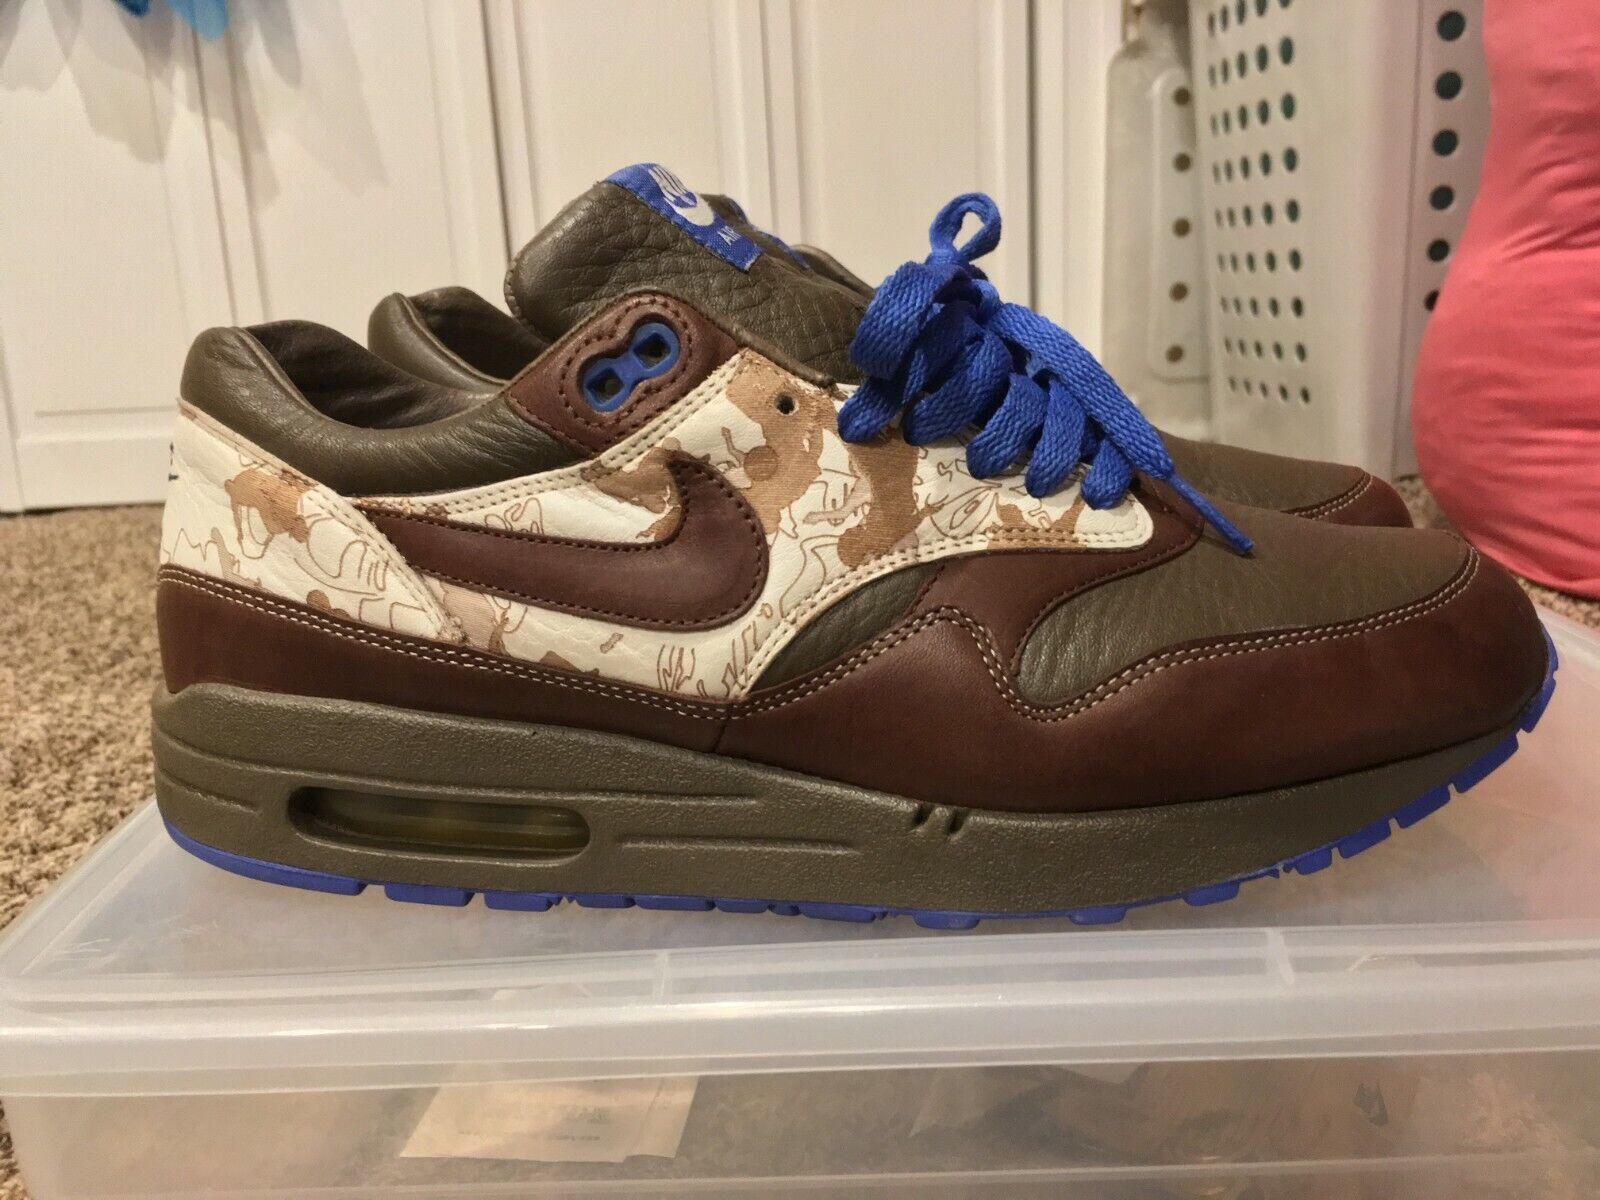 Nike Air Max 1 Truque Pack Chocolate 309740-221 Size 9 Atmos Patta VNDS